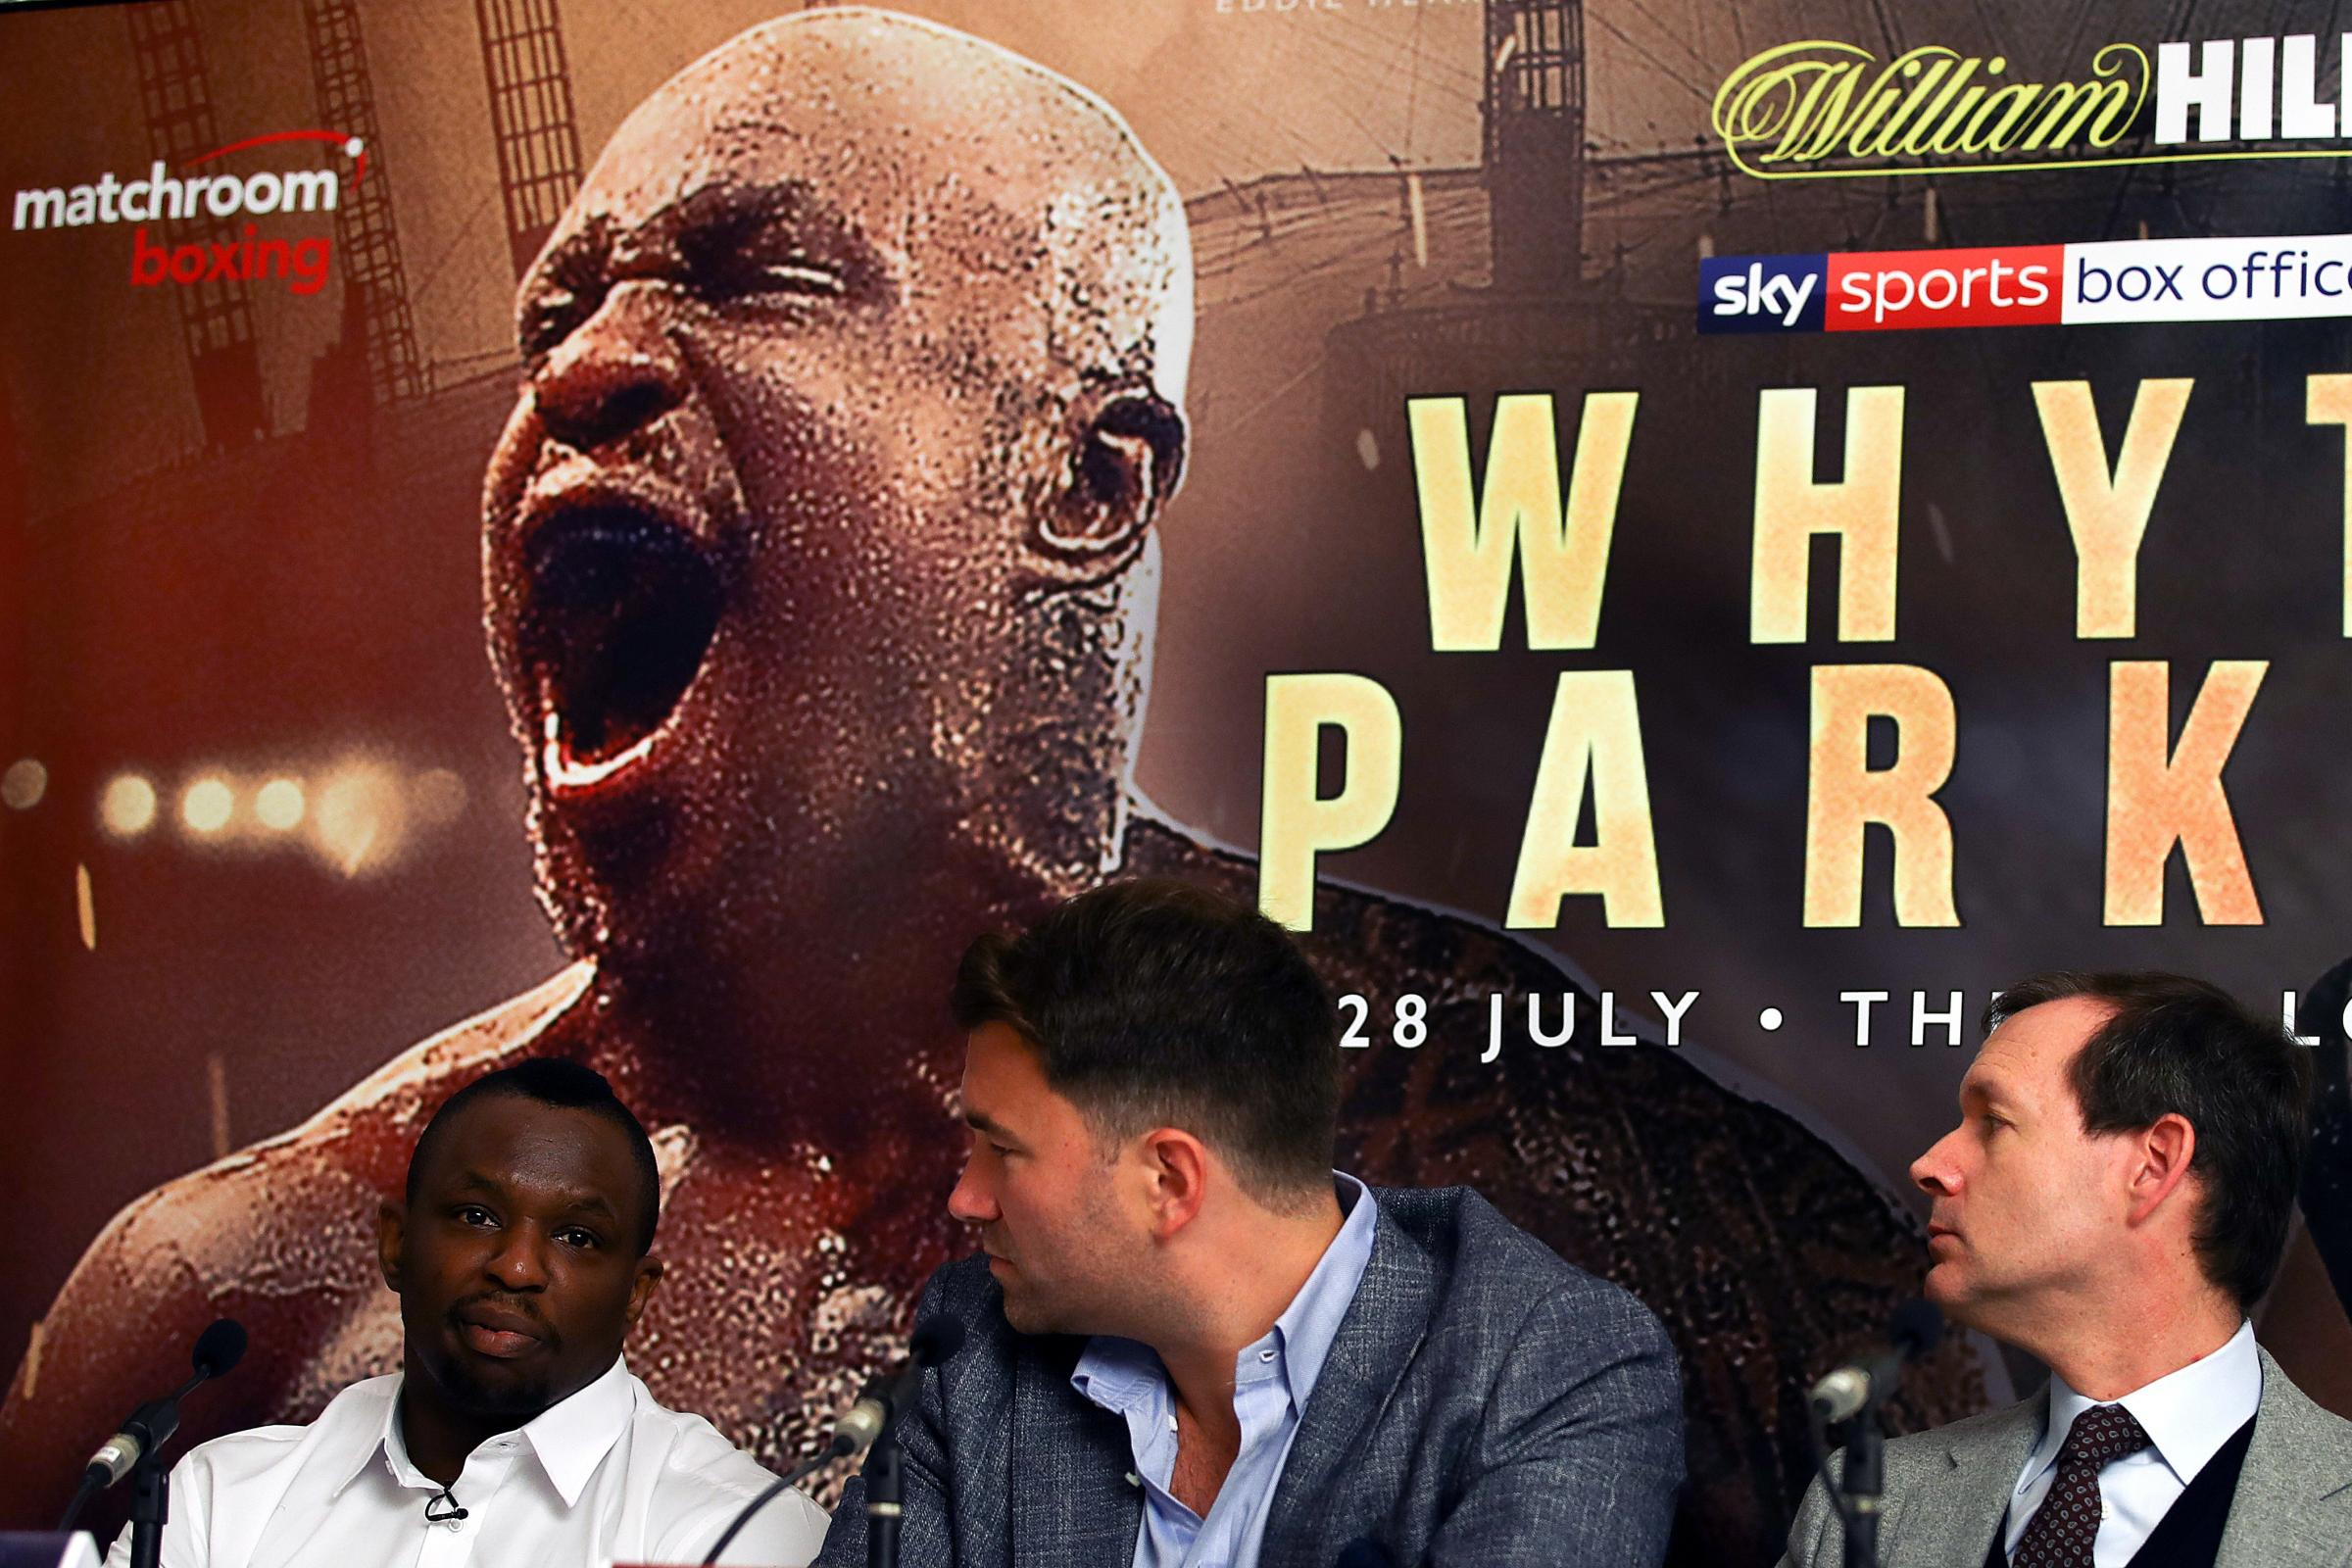 Joseph Parker talks with Mike ahead of his big fight